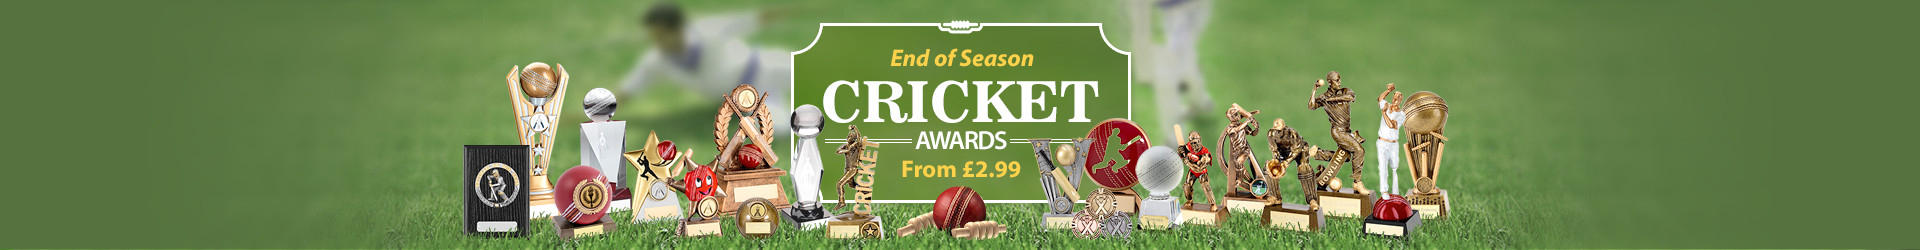 Cricket Trophies